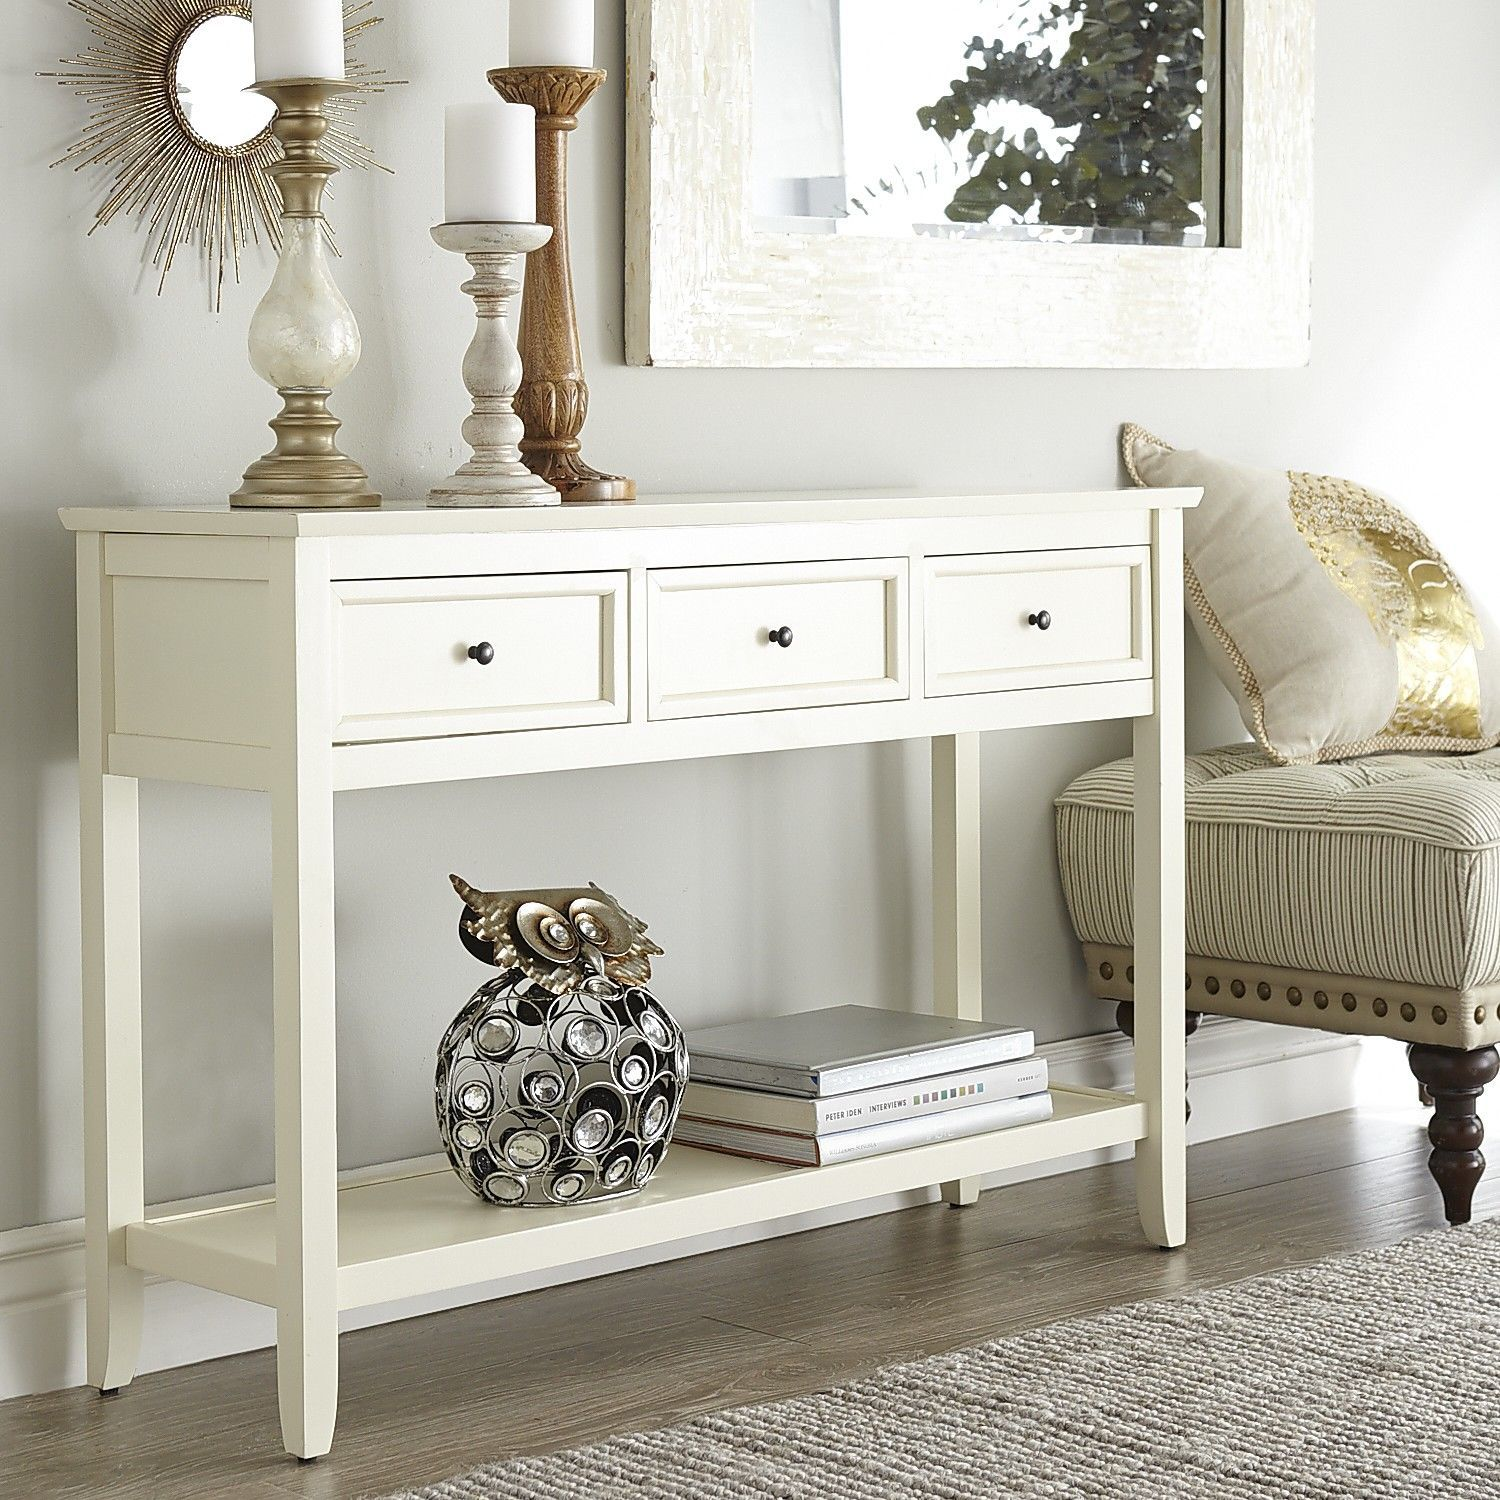 white entrance table. Ashington Console Table - Antique White | Pier 1 Imports Entrance R